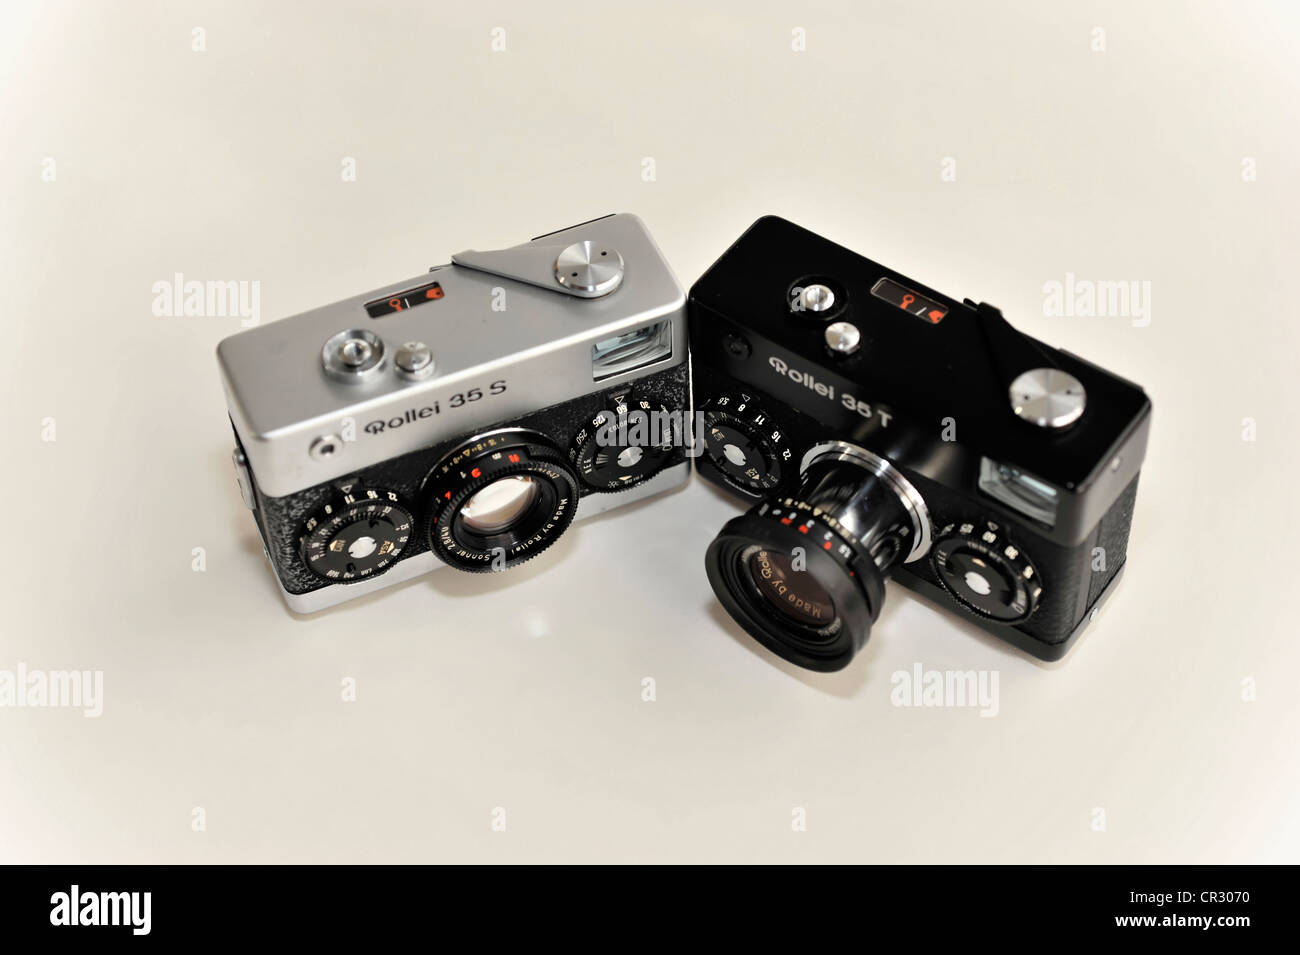 Analogue or film cameras, Rollei 35, Rollei 35s, left and Rollei 35T, right, miniature viewfinder camera, built Stock Photo